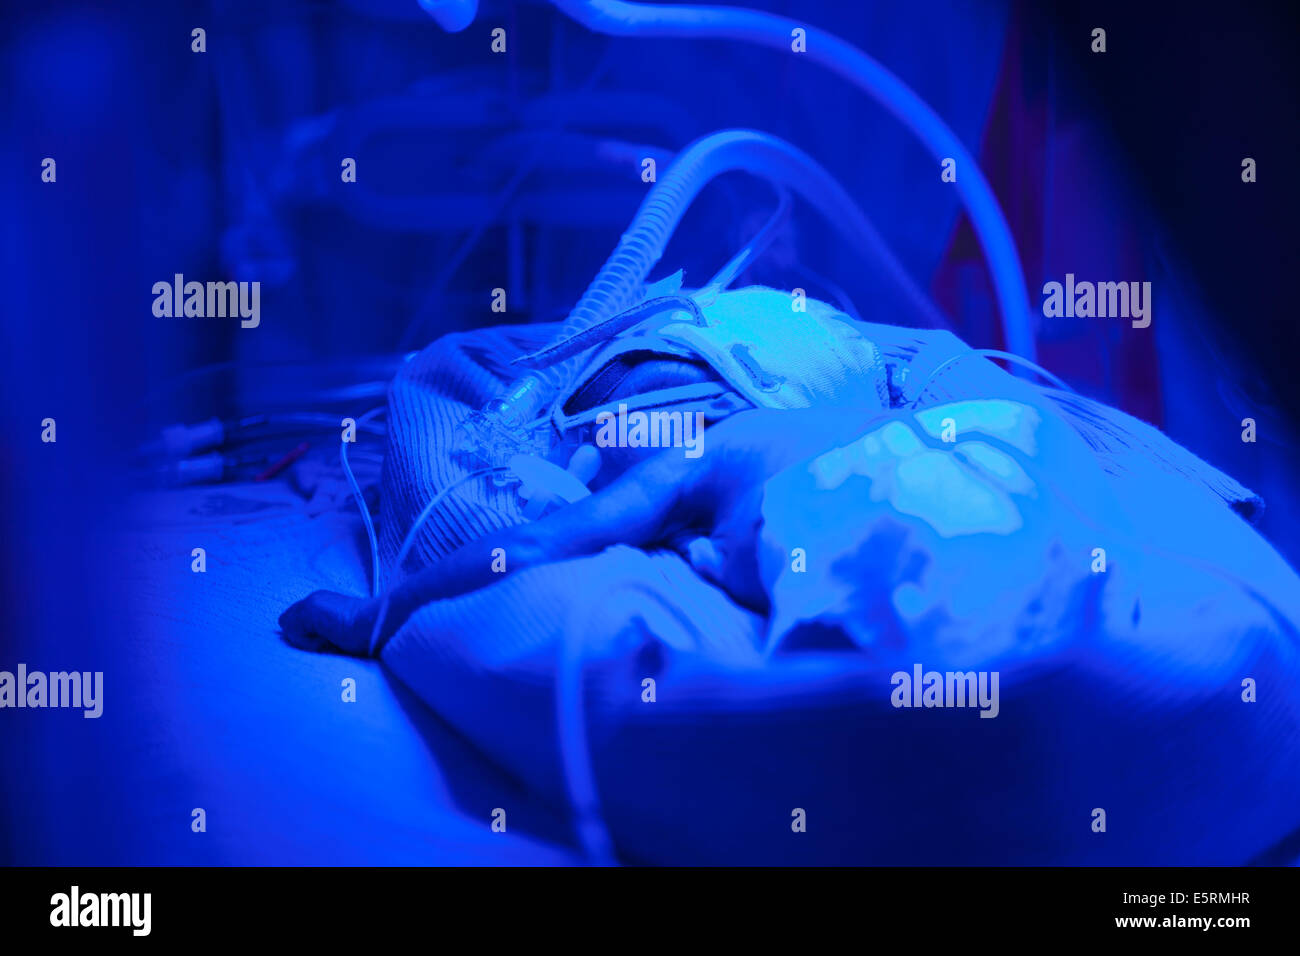 Newborn Babies Jaundice Treatment Newborn Baby Undergoing Ultraviolet Light Treatment For